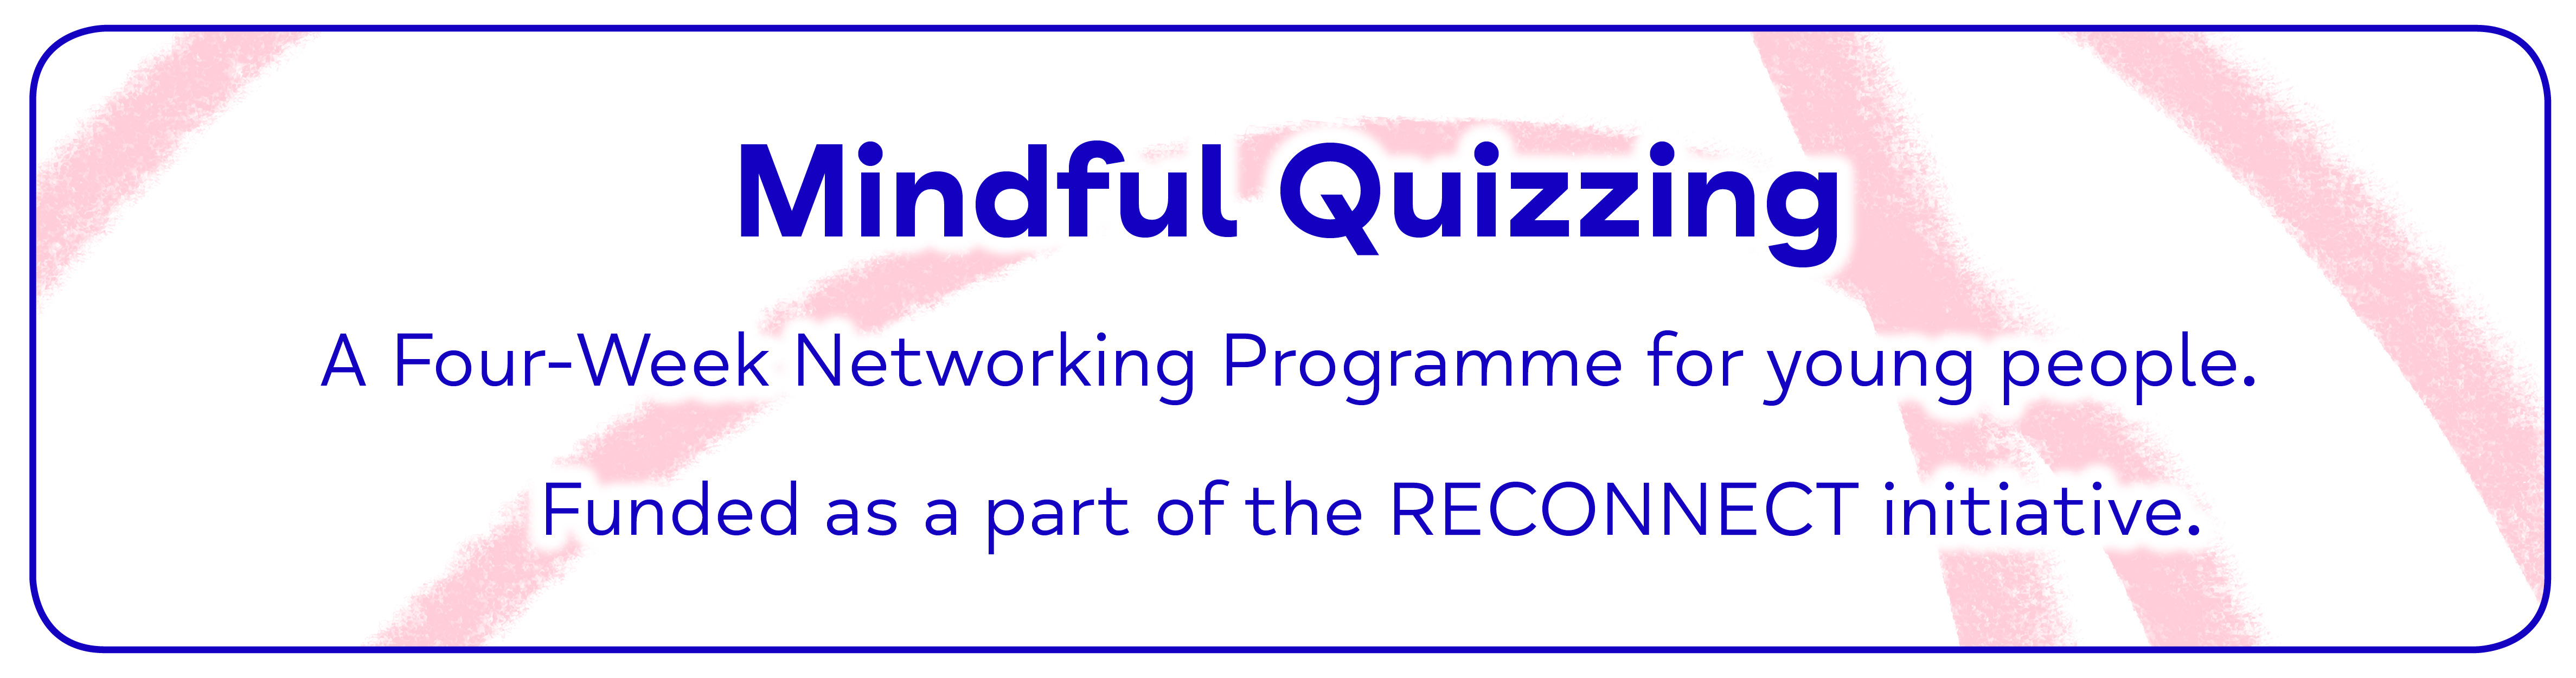 Mindful Quizzing A Four-Week Networking Programme for young people. Funded as a part of the RECONNECT initiative.